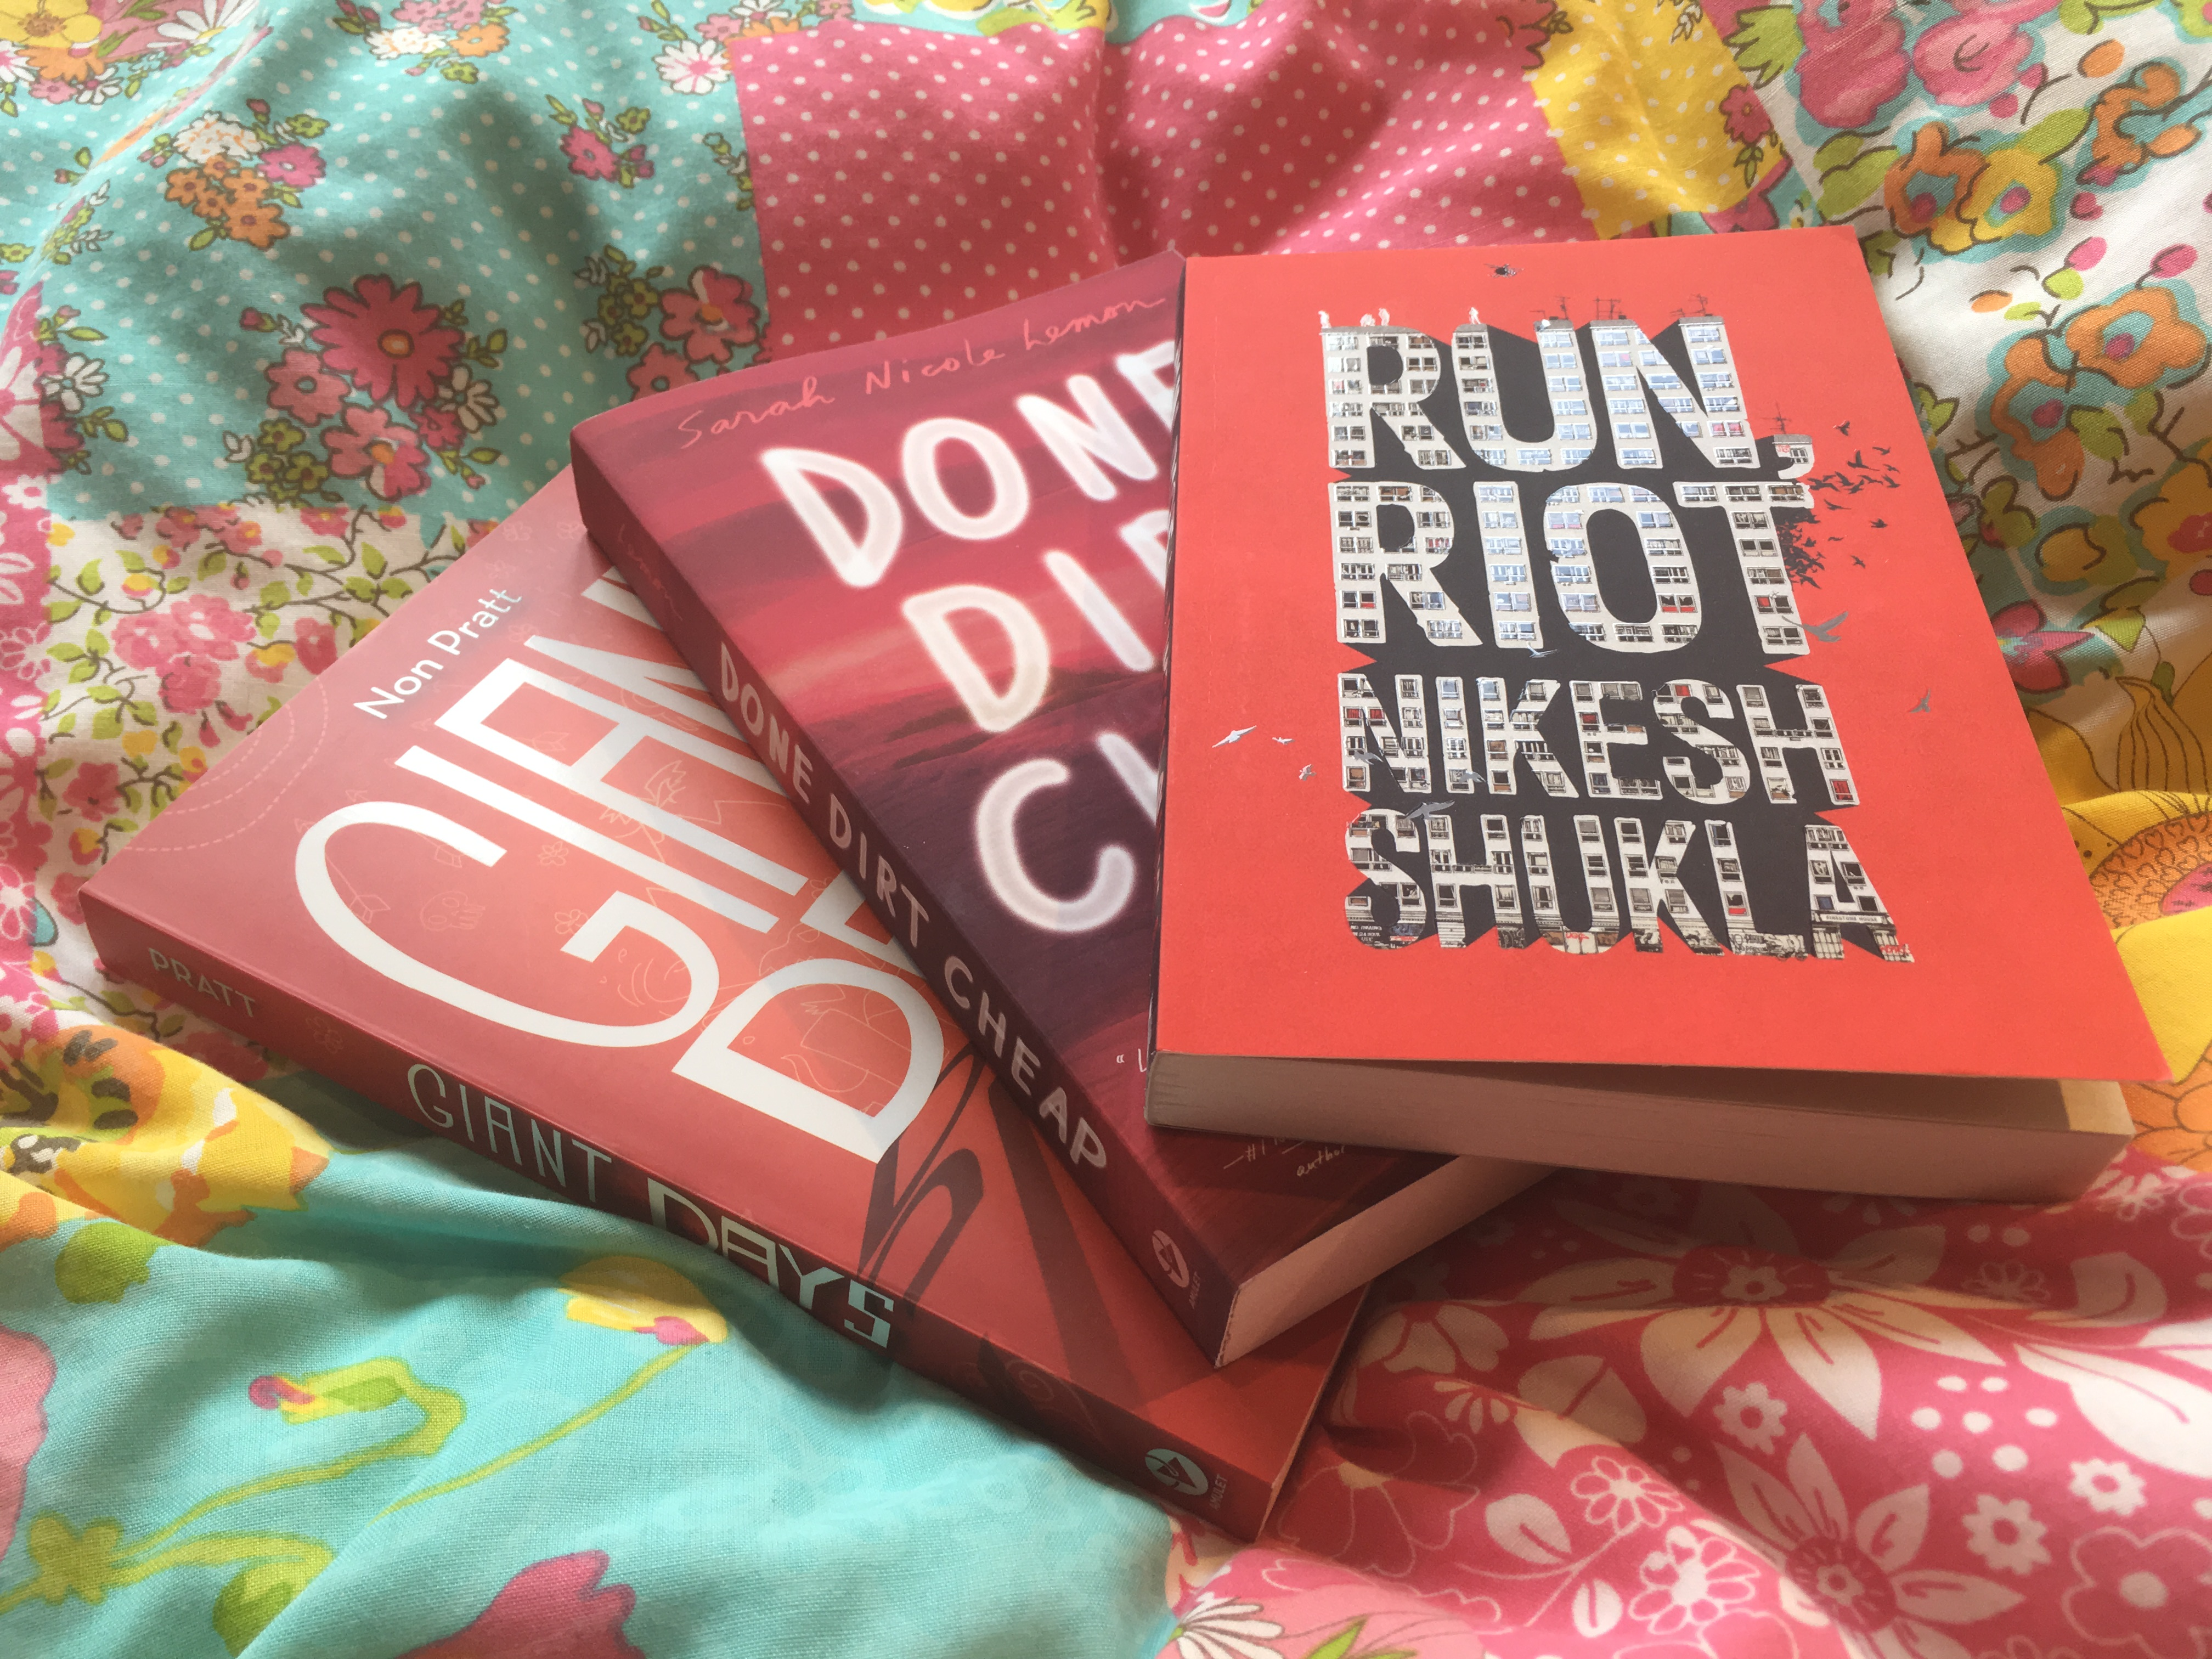 The books Giant Days, Done Dirt Cheap and Run, Riot spread out on a flowery duvet.